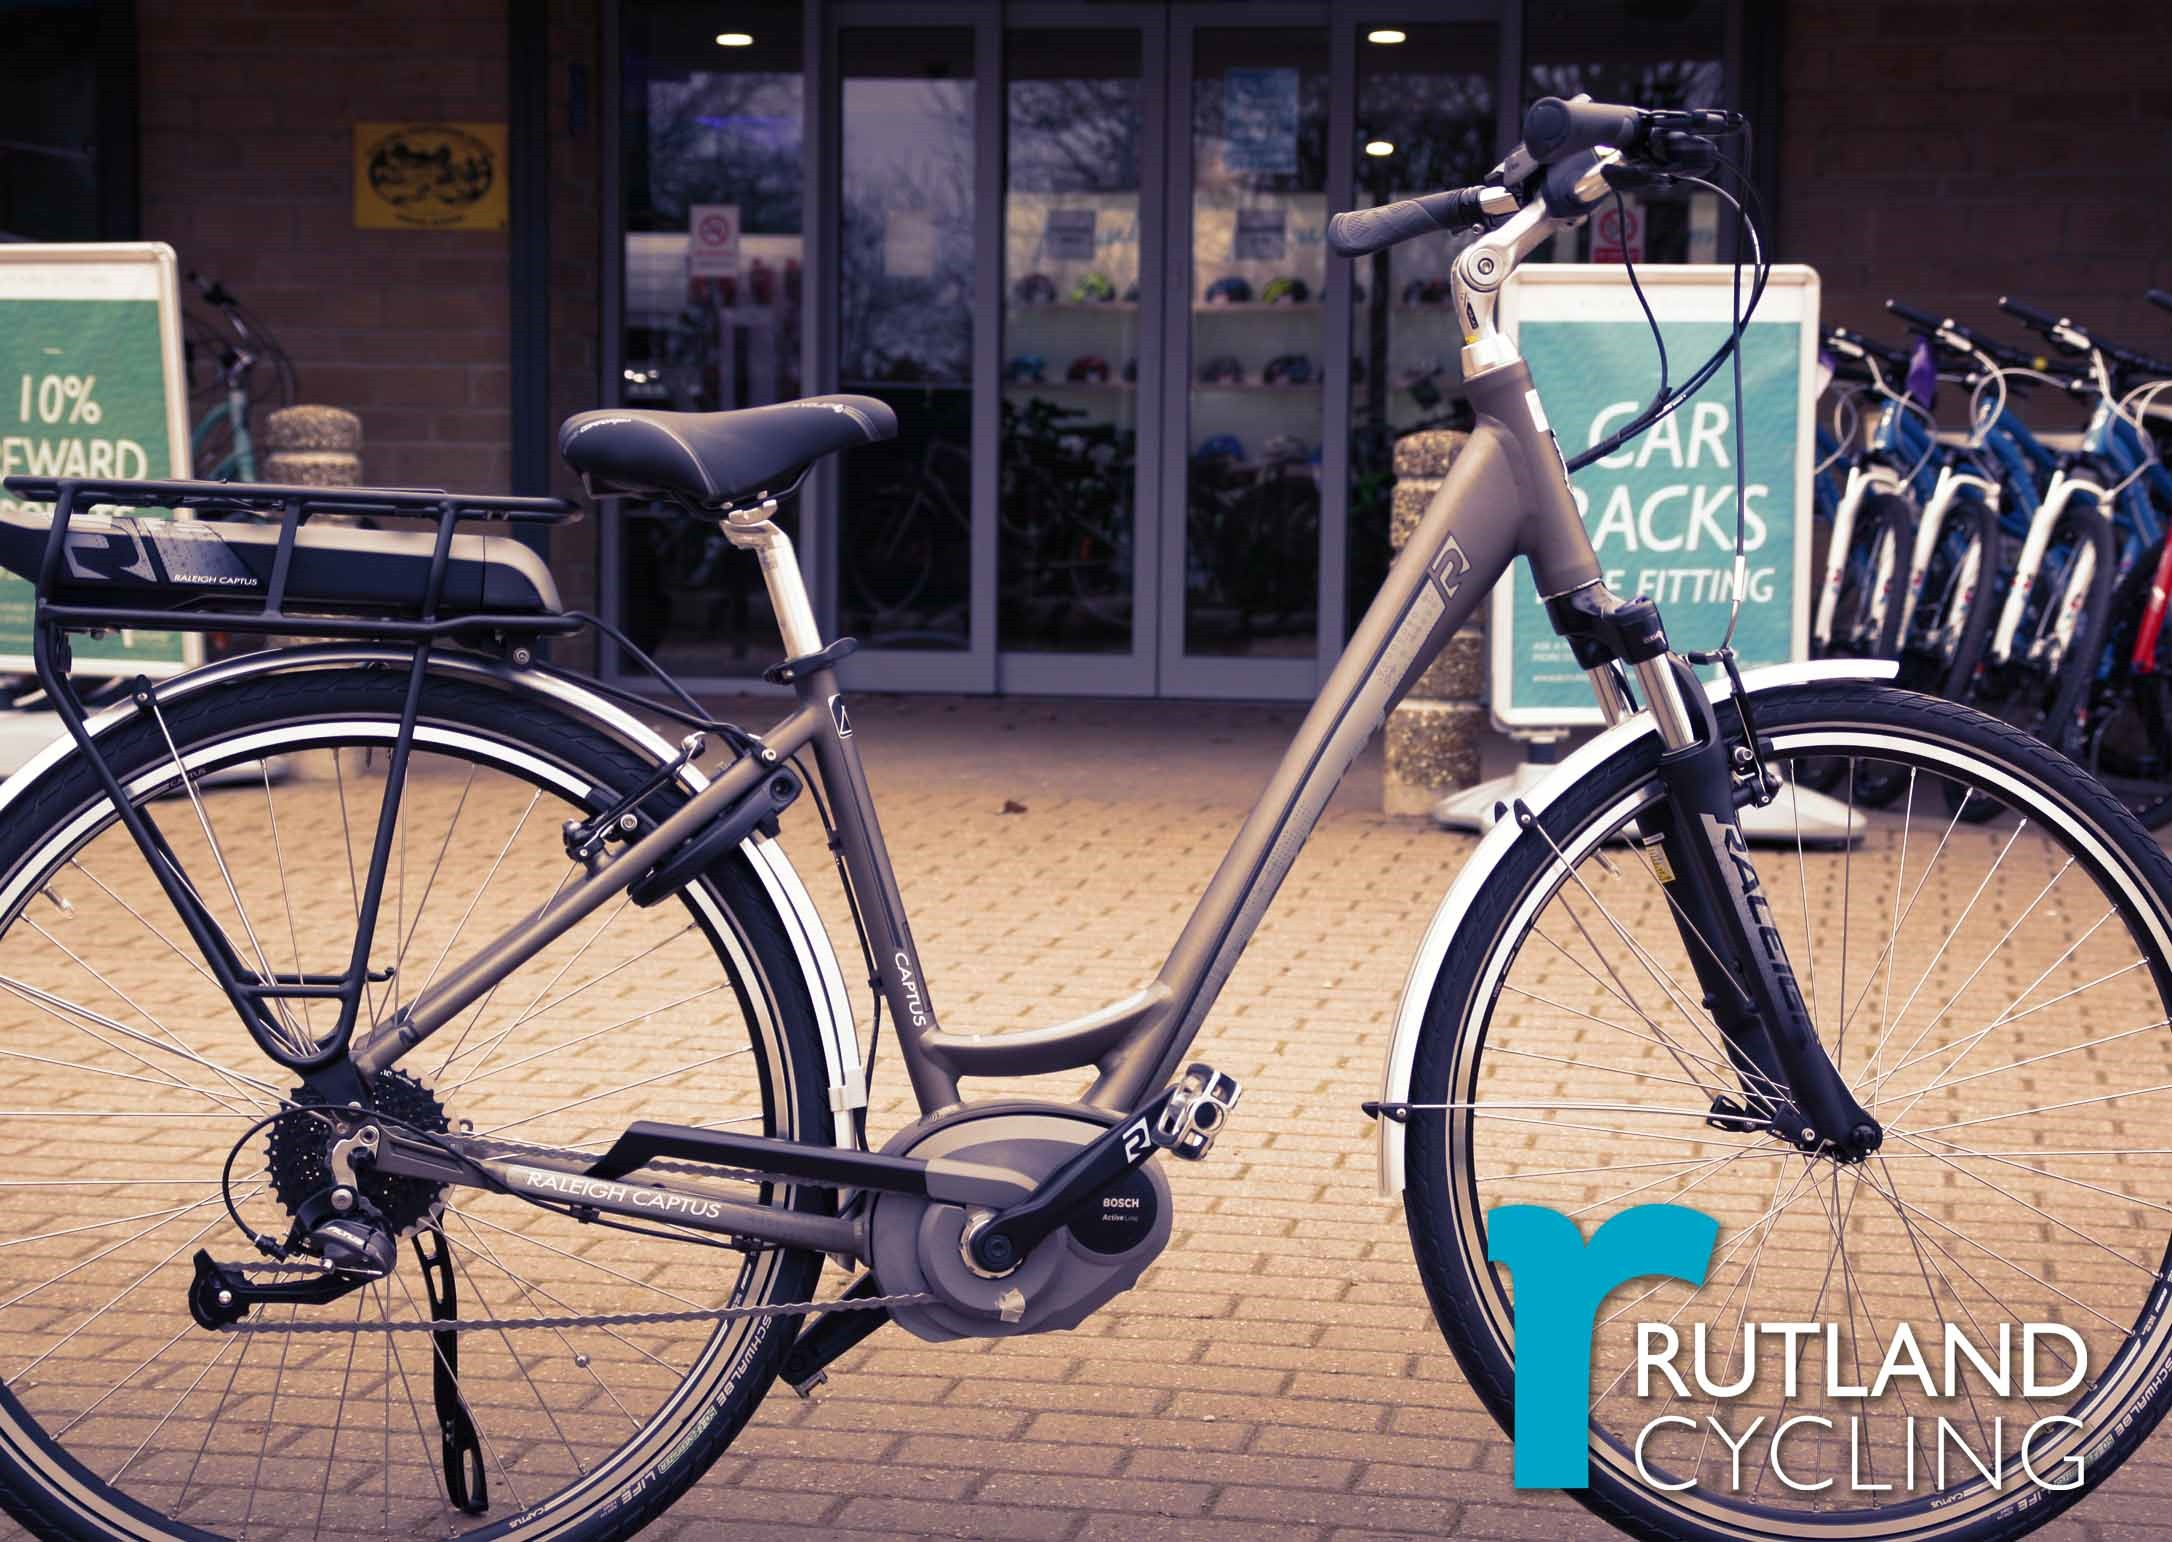 Raleigh E-bikes at Rutland Cycling Whitwell